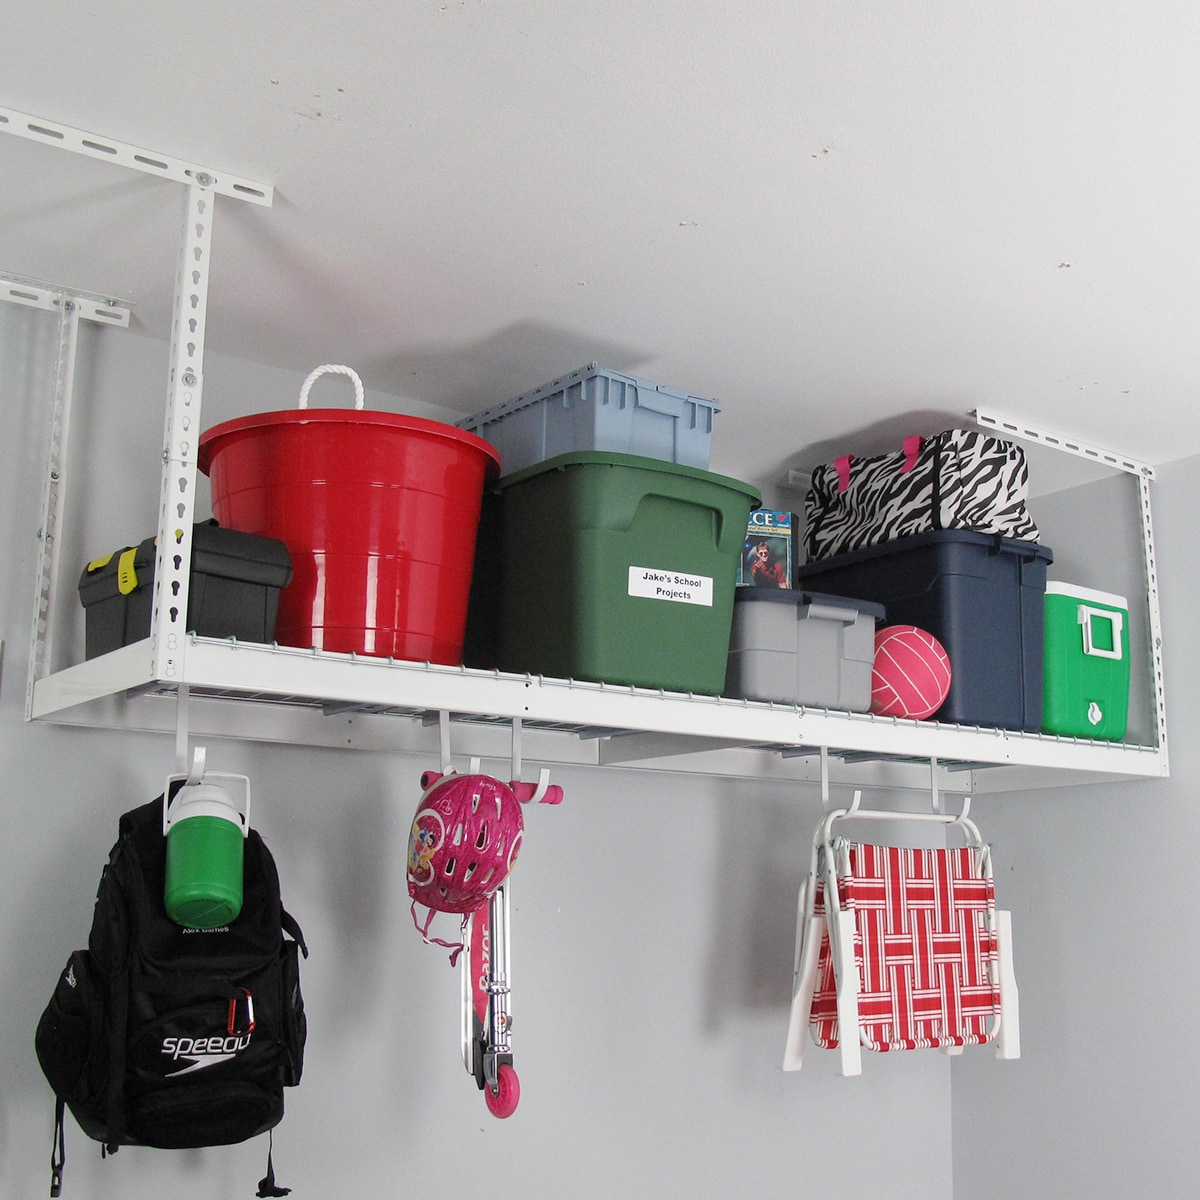 storage two pack online garage f hook overhead accessory x kit exp piece combo image members ft costco saferacks off deluxe deal racks